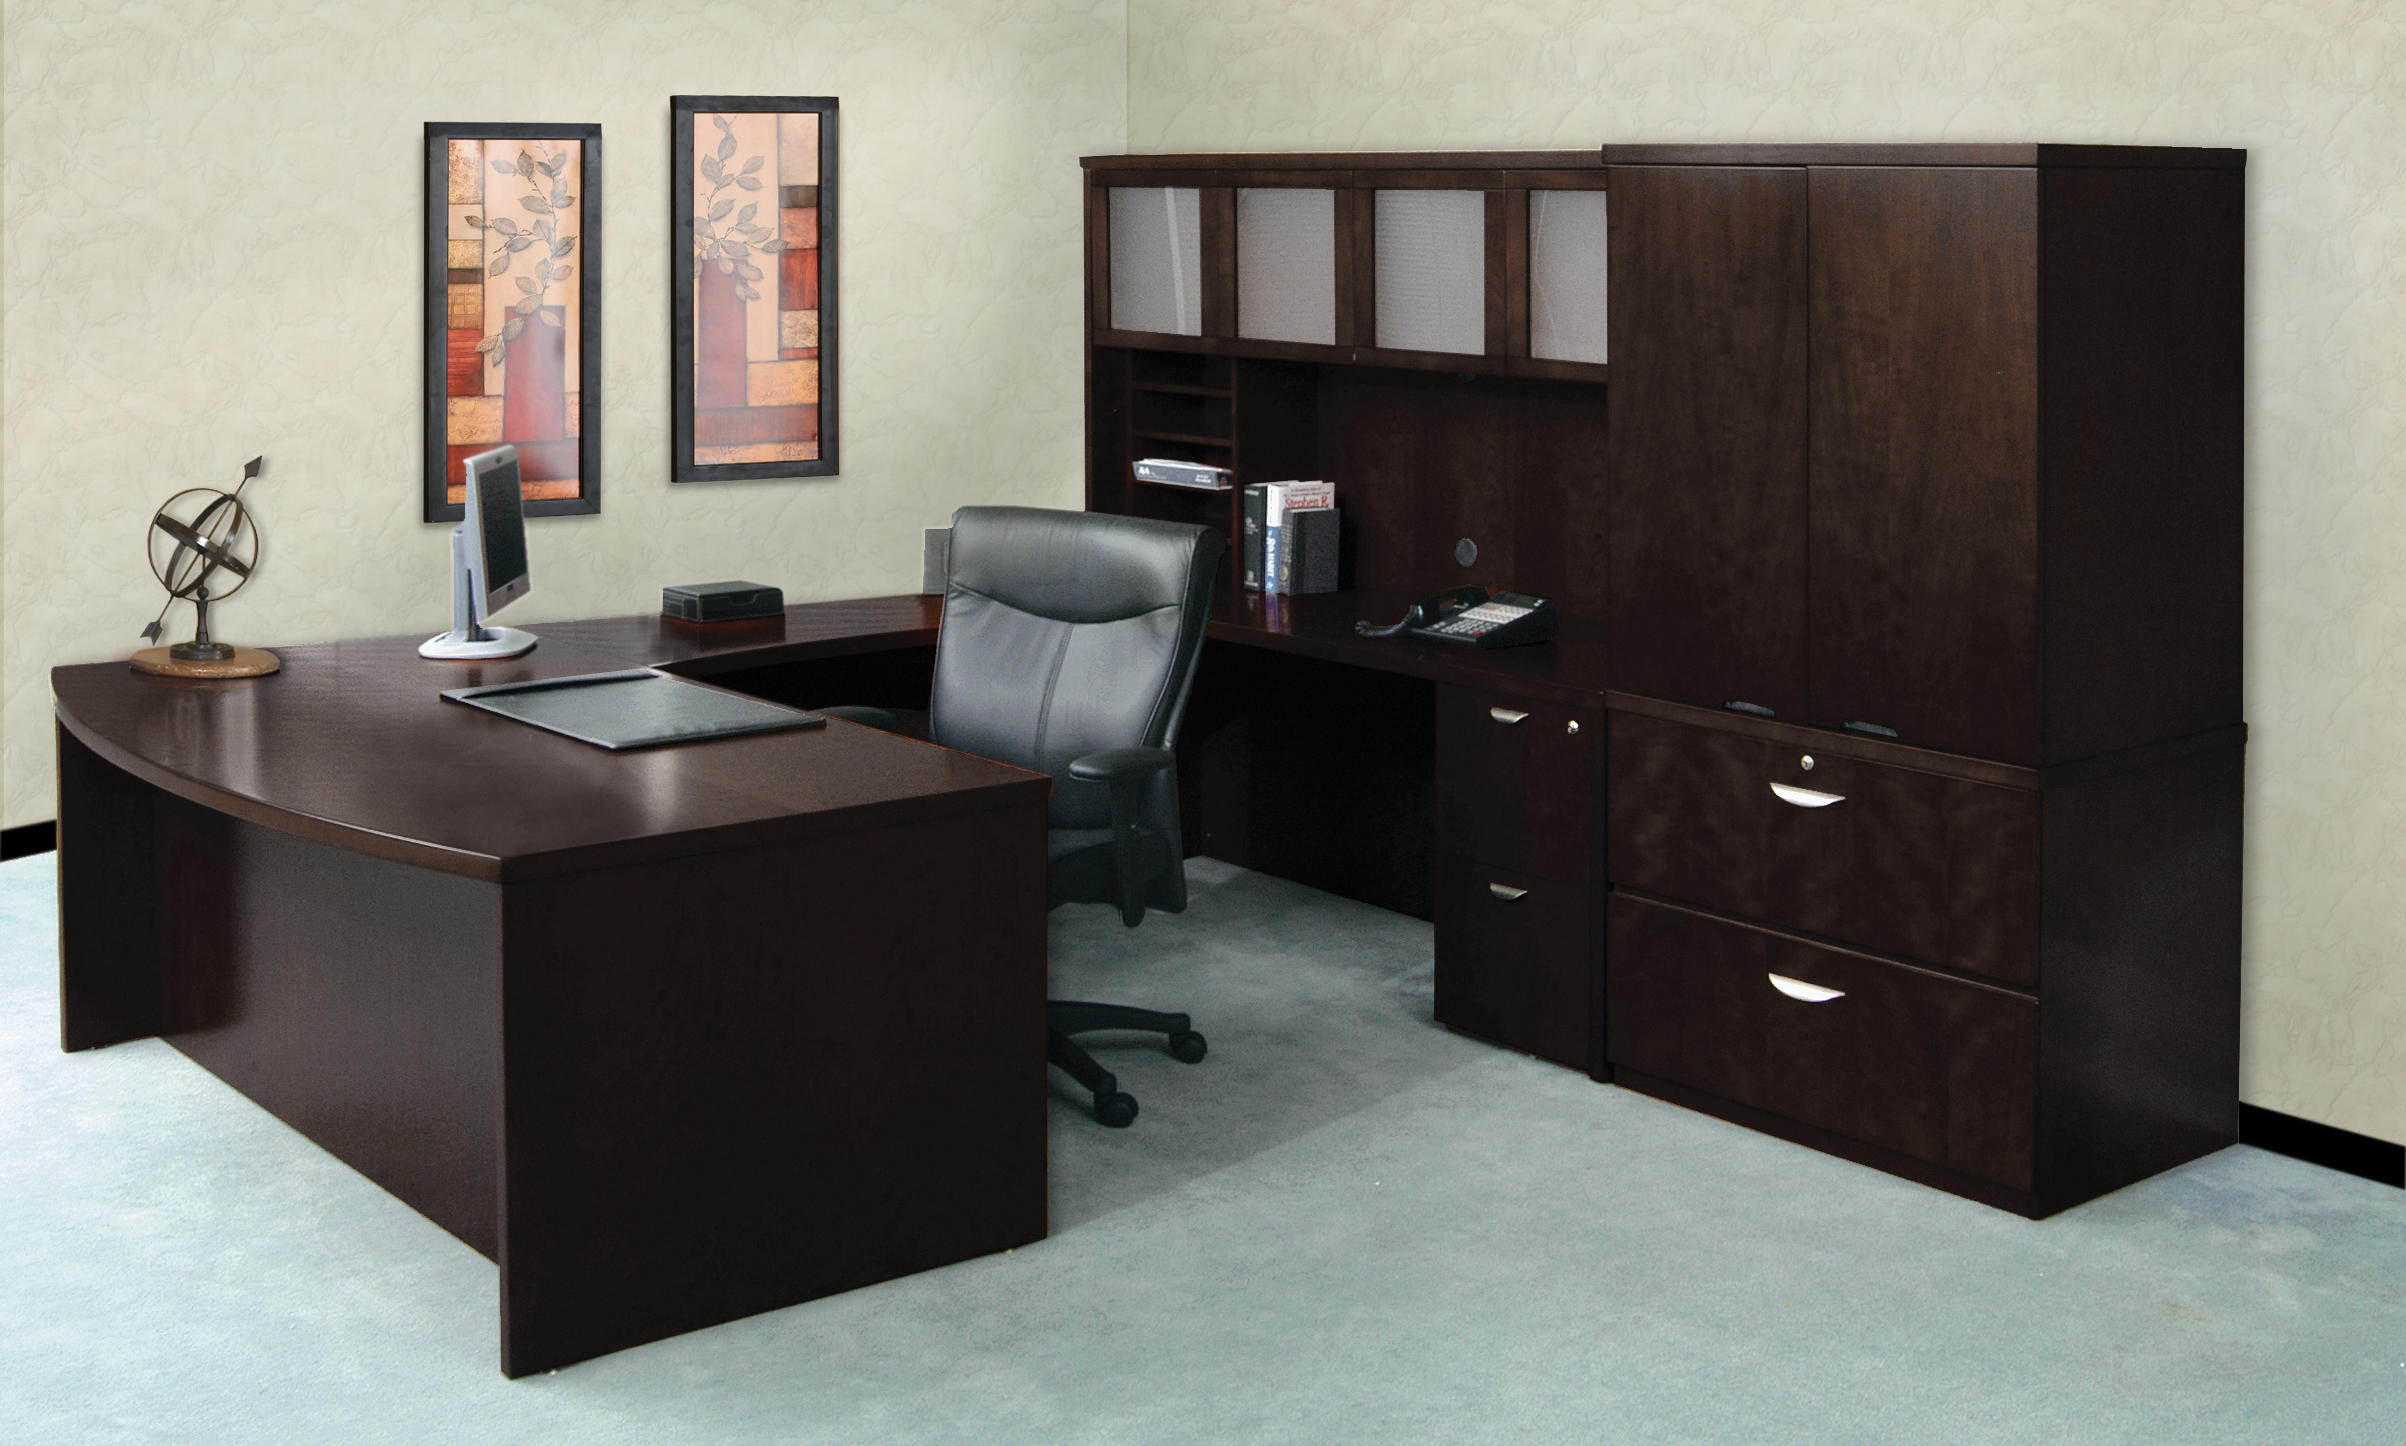 office chairs unlimited chair design youtube beaver falls pennsylvania pa